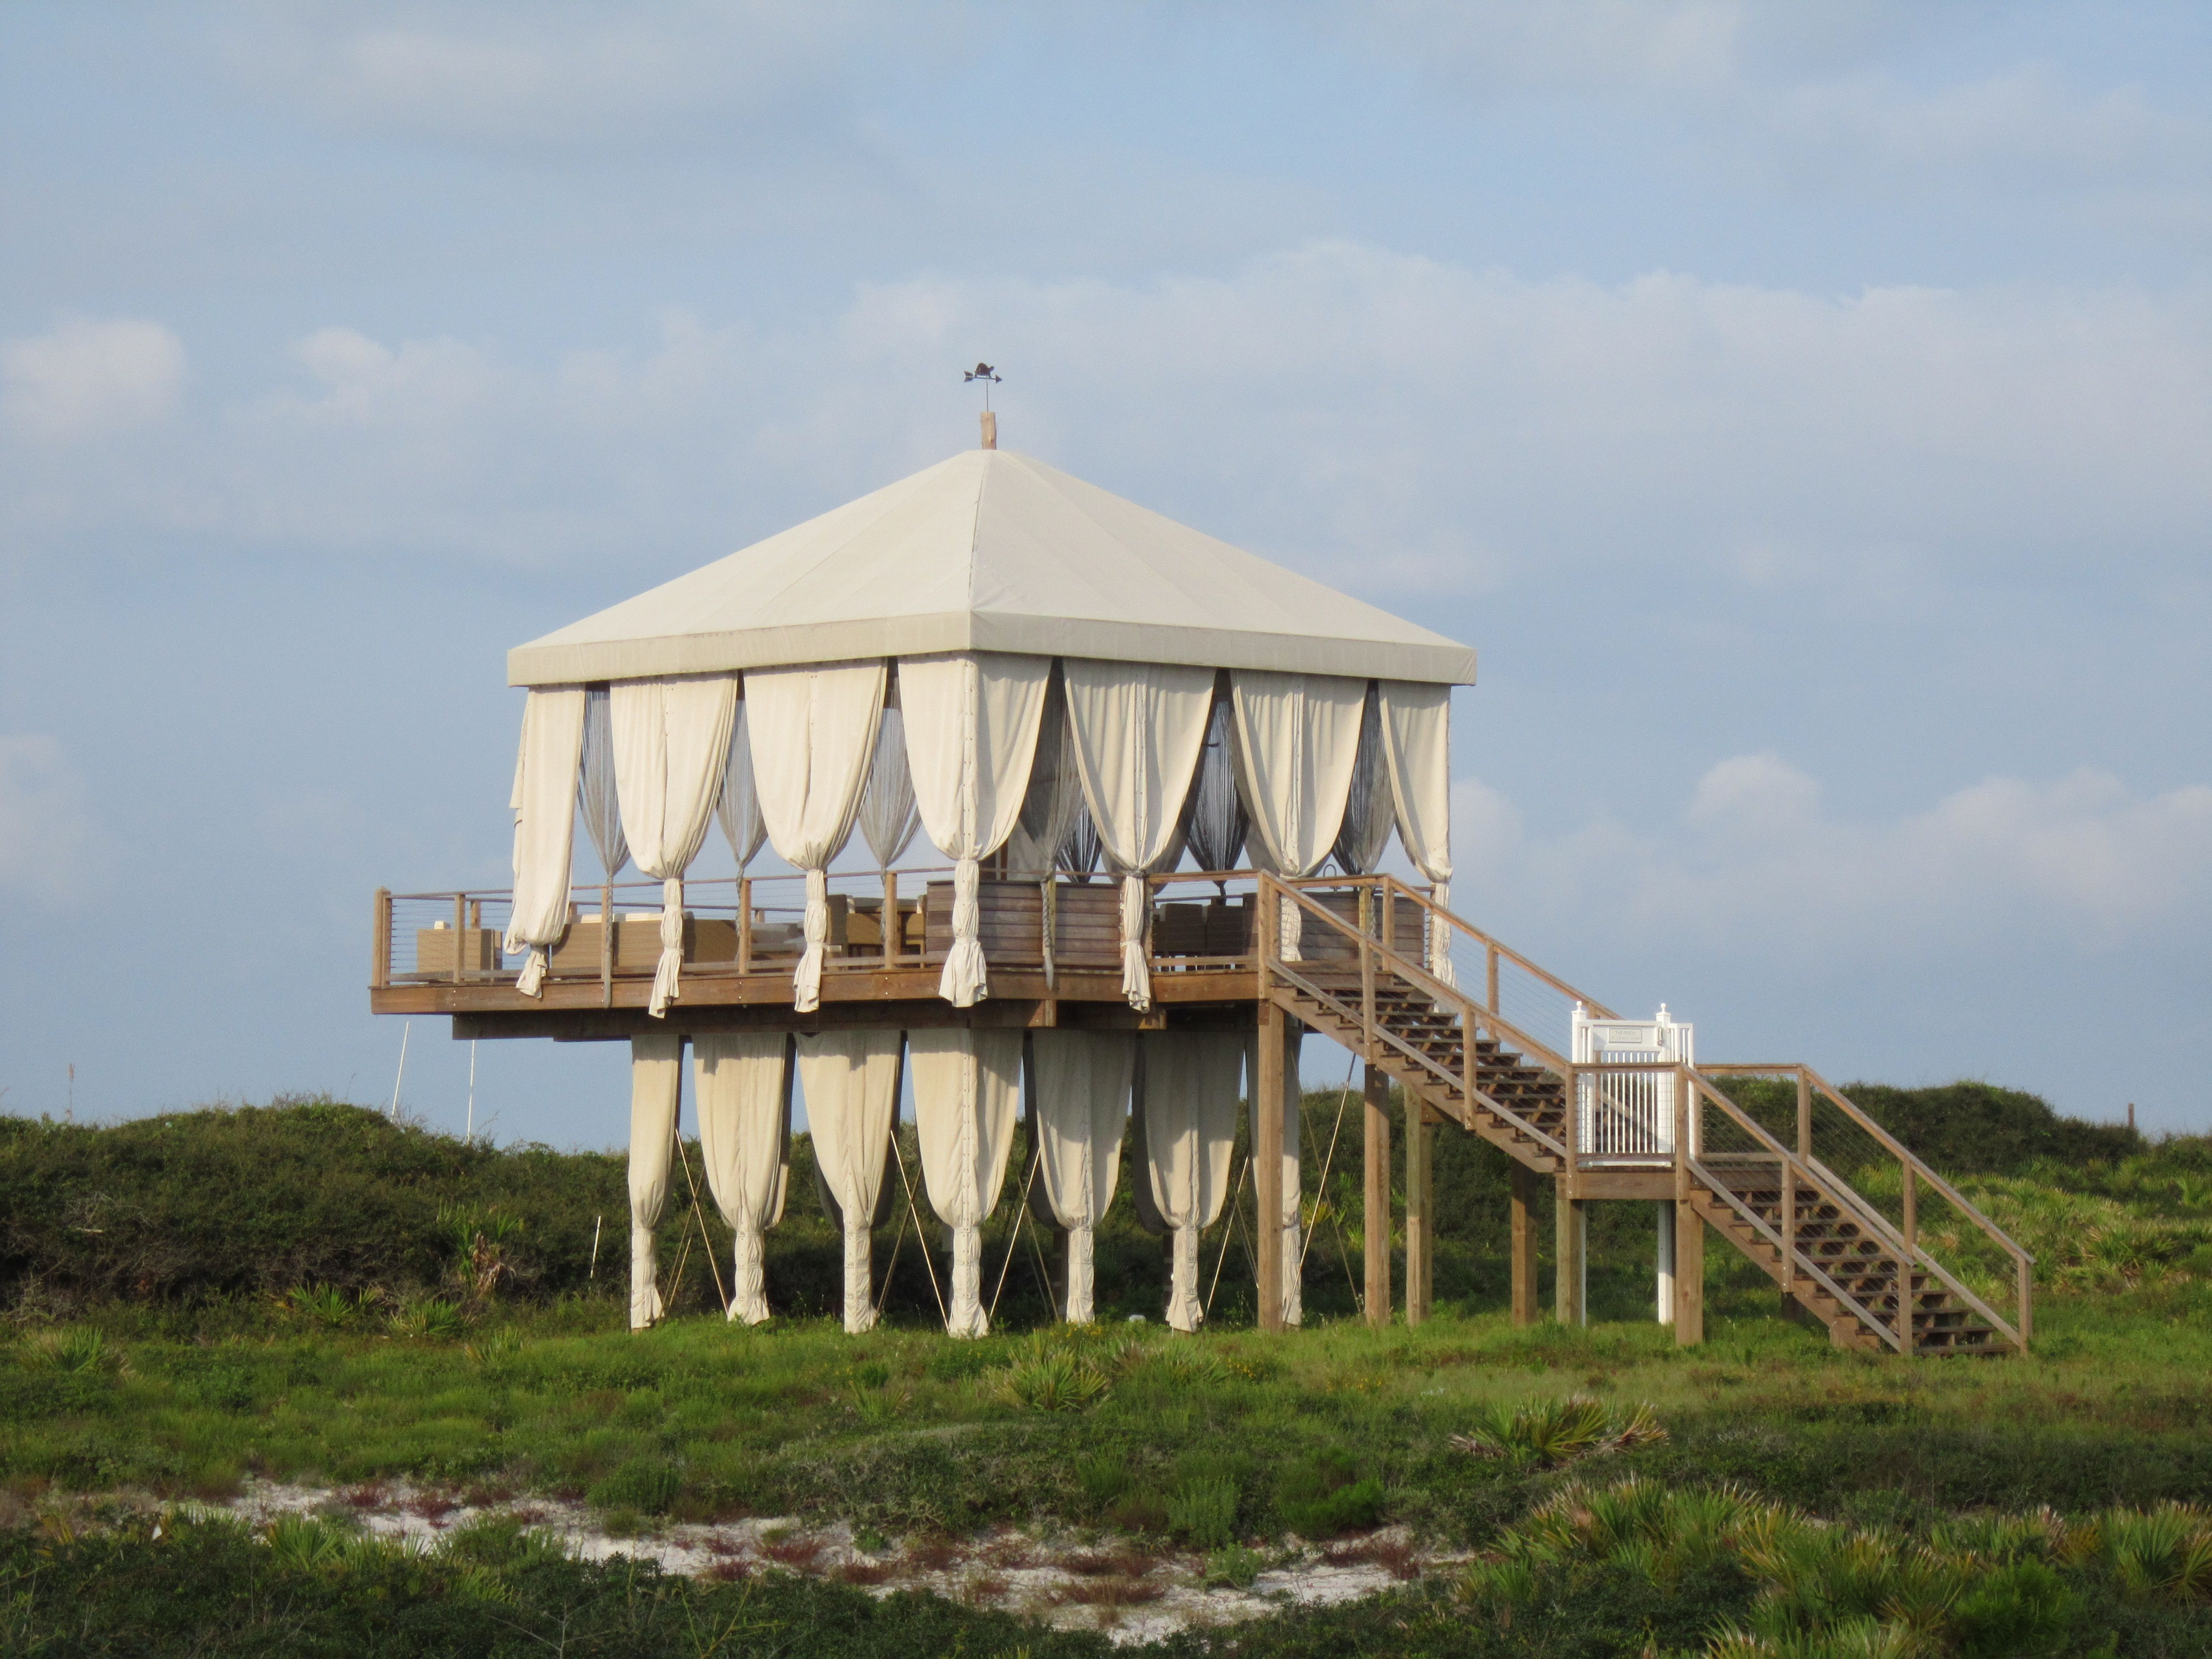 Alys Beach Fl We Tried To Get Up This Amazing Pavilion Its All